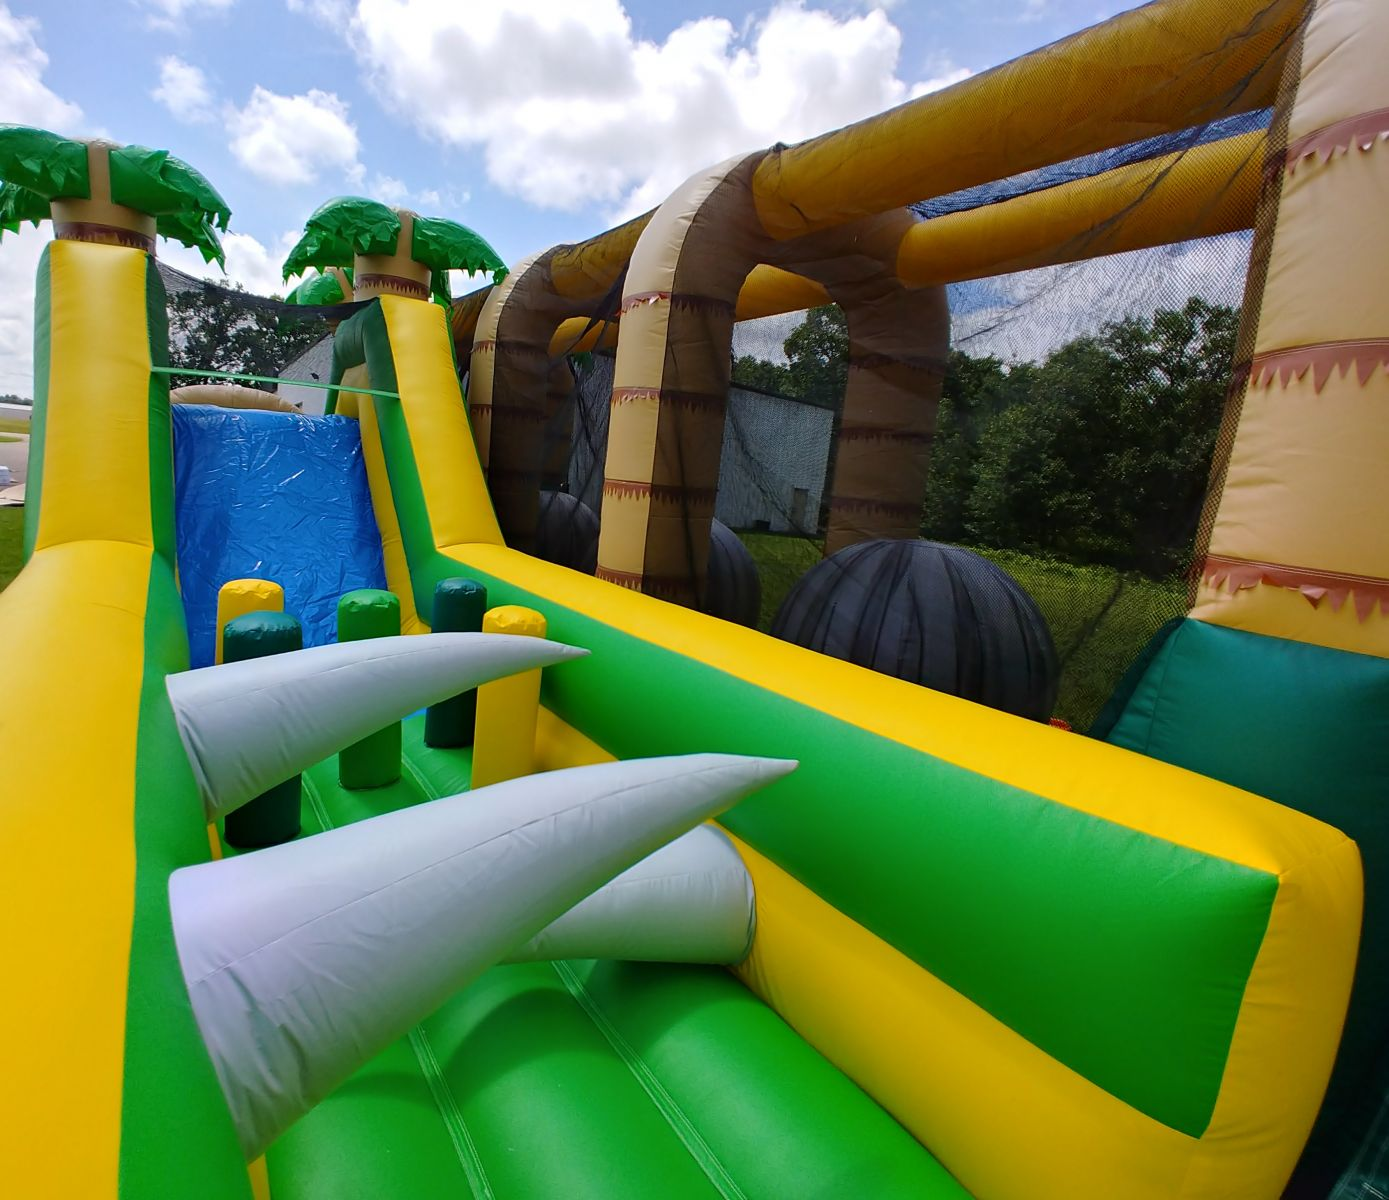 Obstacle course slide and inflatable challenges